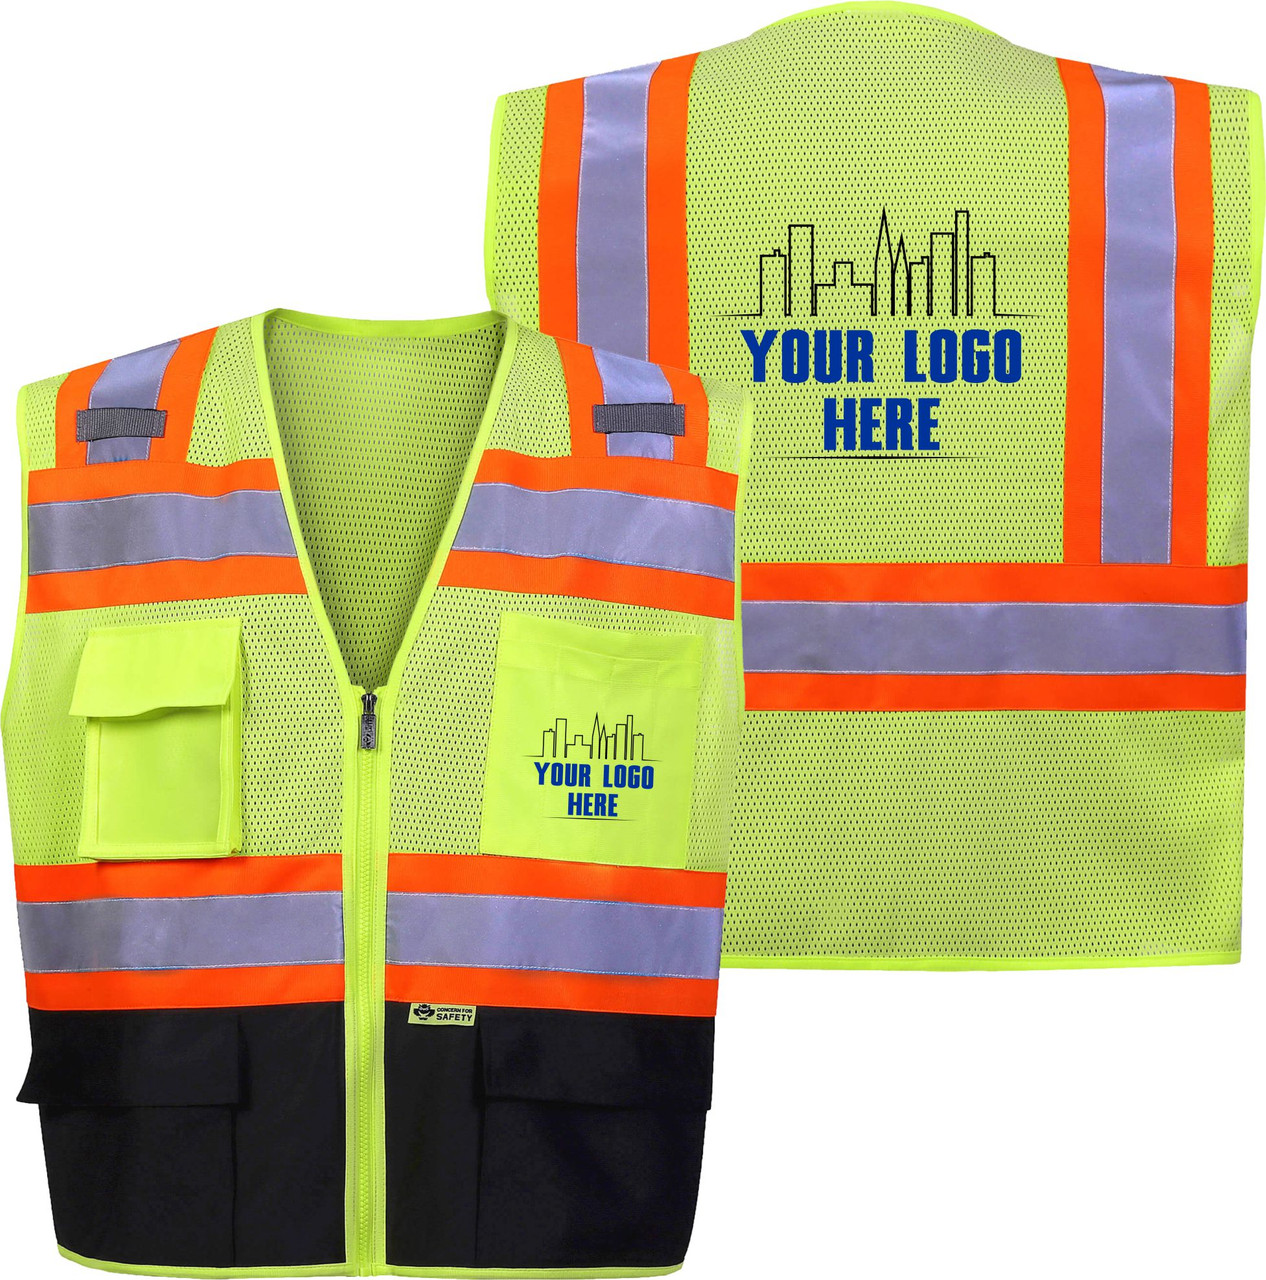 Custom Logo Safety Vest - This Class 2 Safety Vest is available with Custom Printed Logo.  If you are looking for custom printed safety vests this is the perfect option.